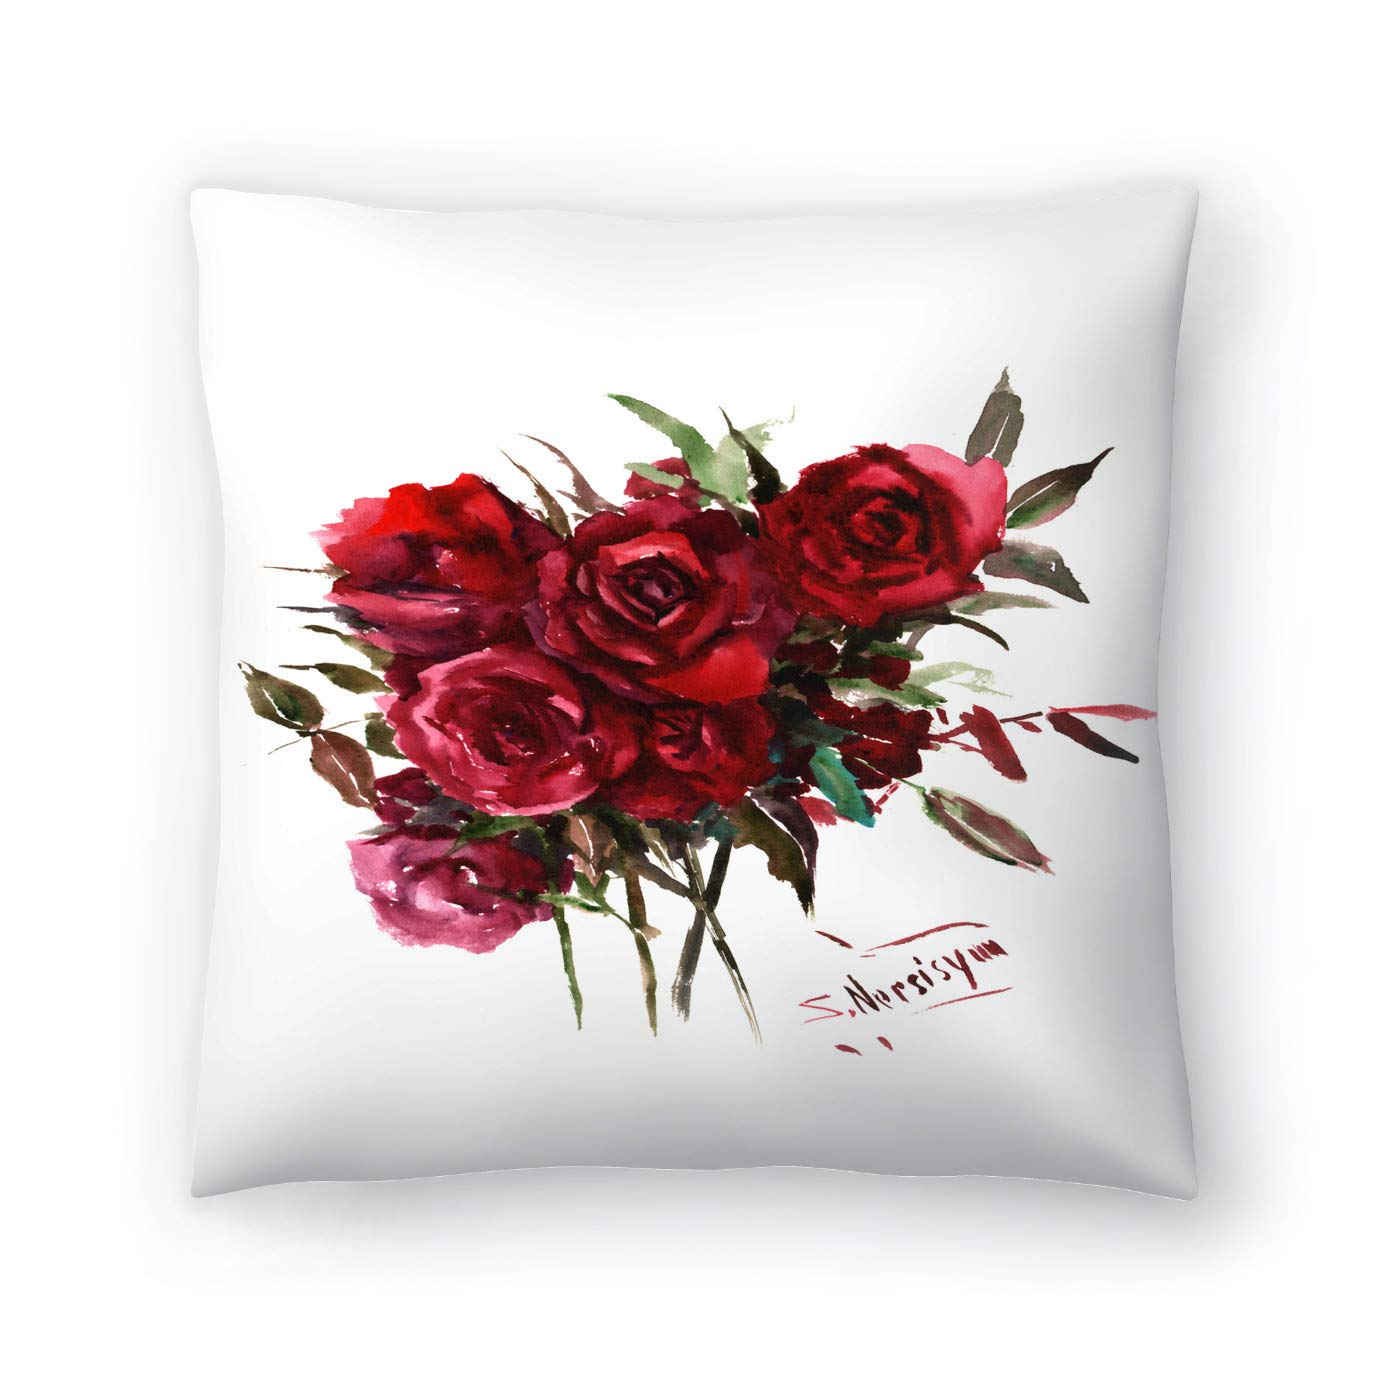 Buy American Flat Deep Red Burgundy Roses Pillow By Suren Nersisyan 20 X 20 Online At Low Prices In India Amazon In